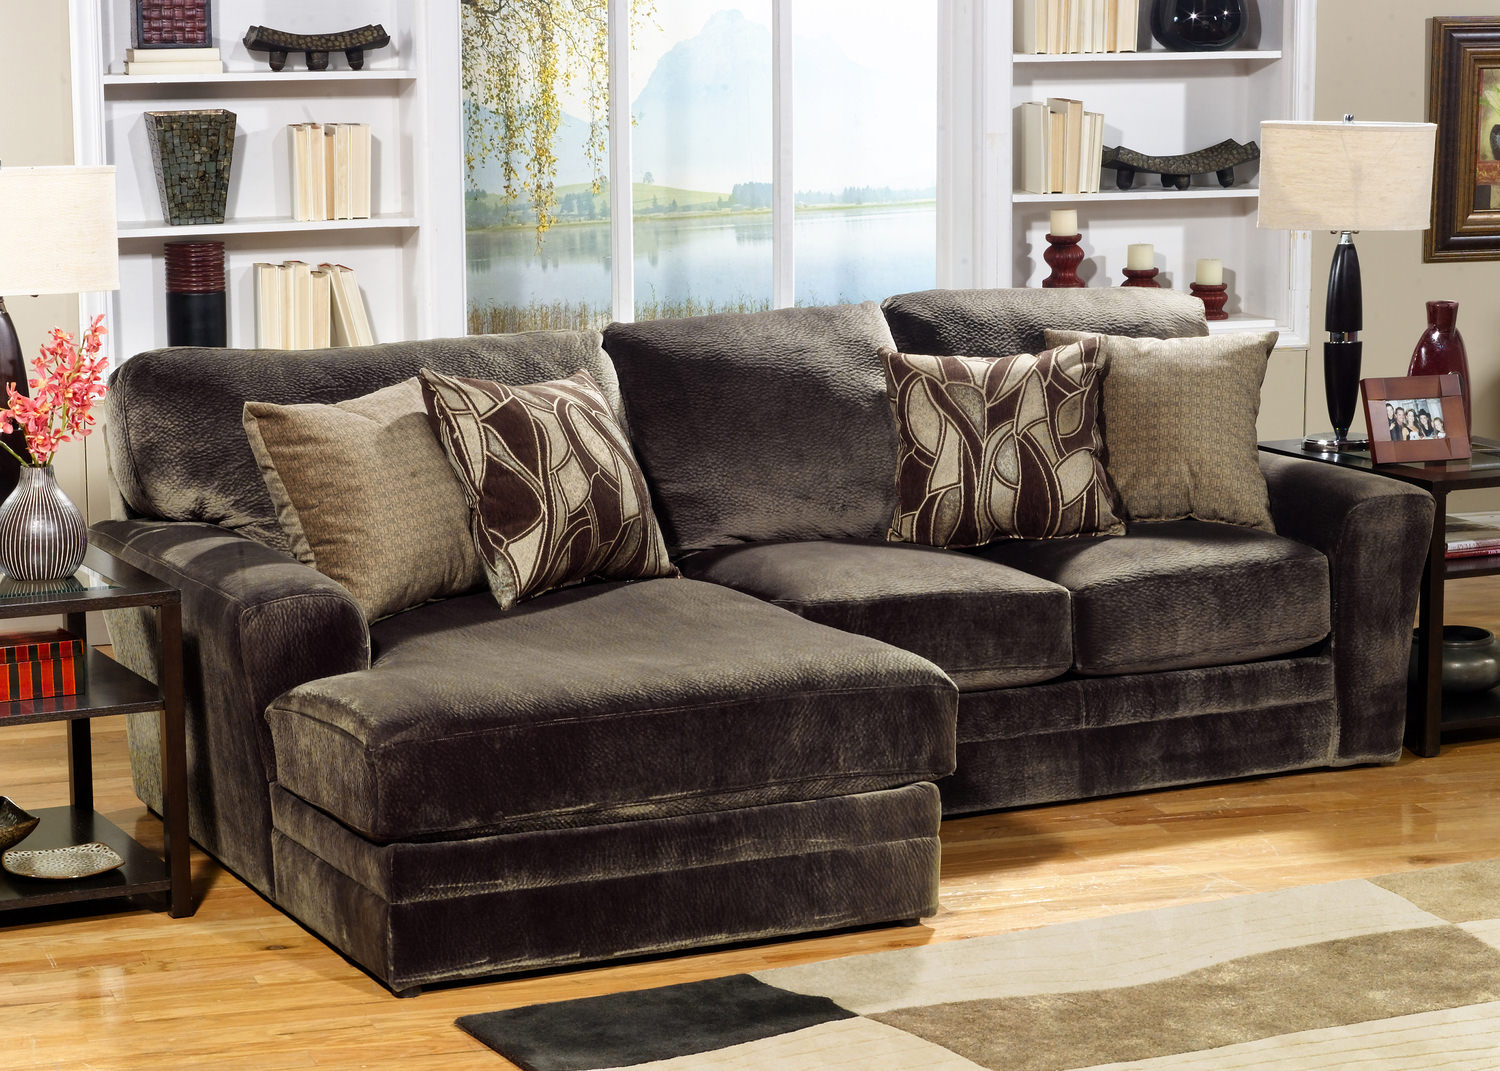 Zailey 5-Piece Fabric Modular - Sectional Sofas ...